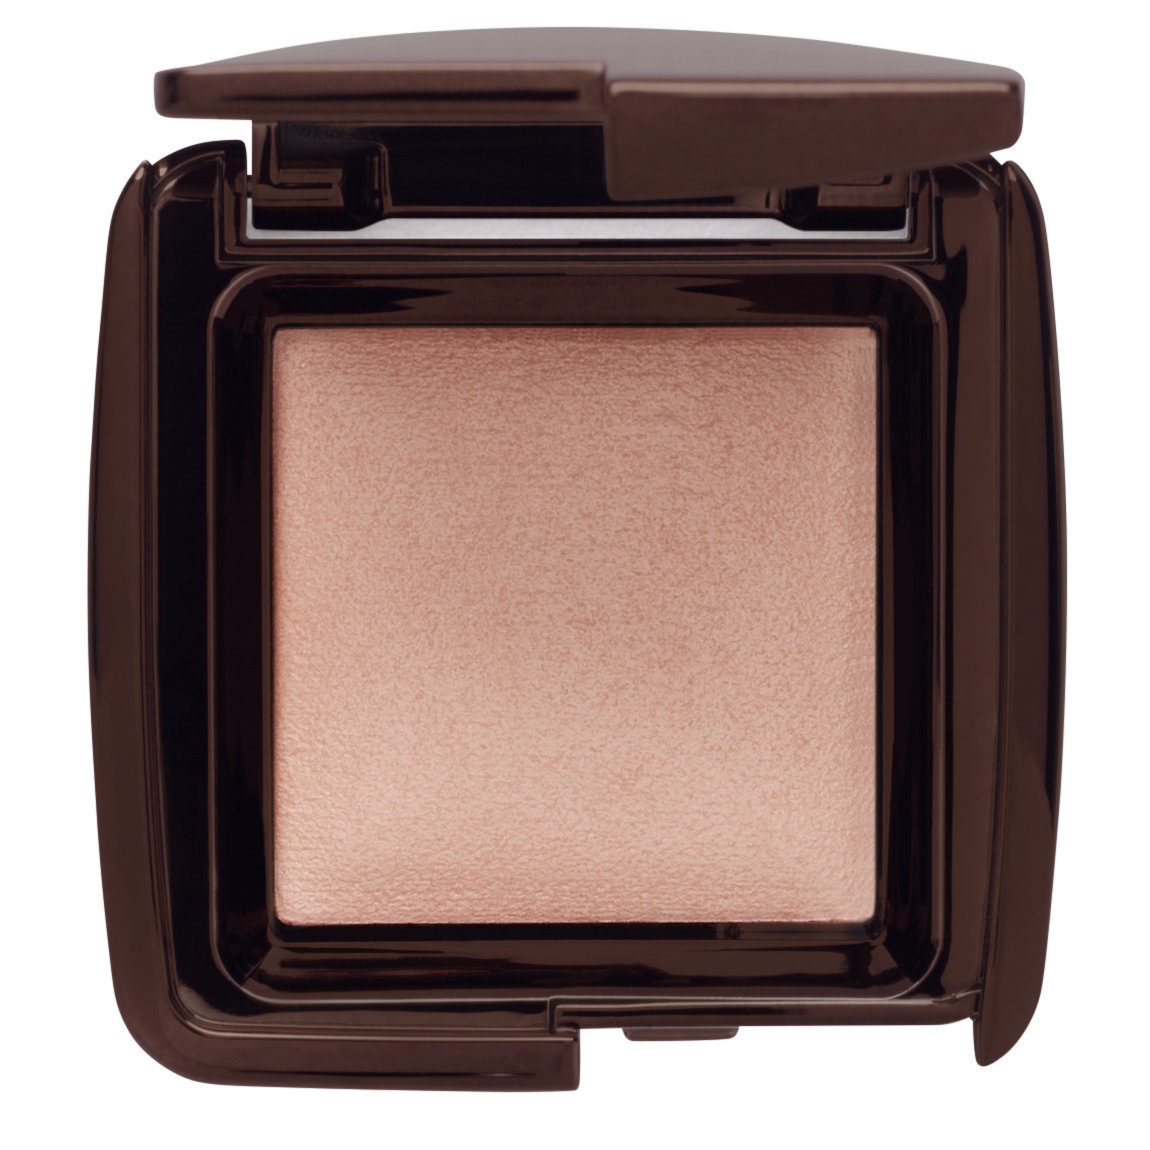 Hourglass Ambient Lighting Powder Travel Size product swatch.